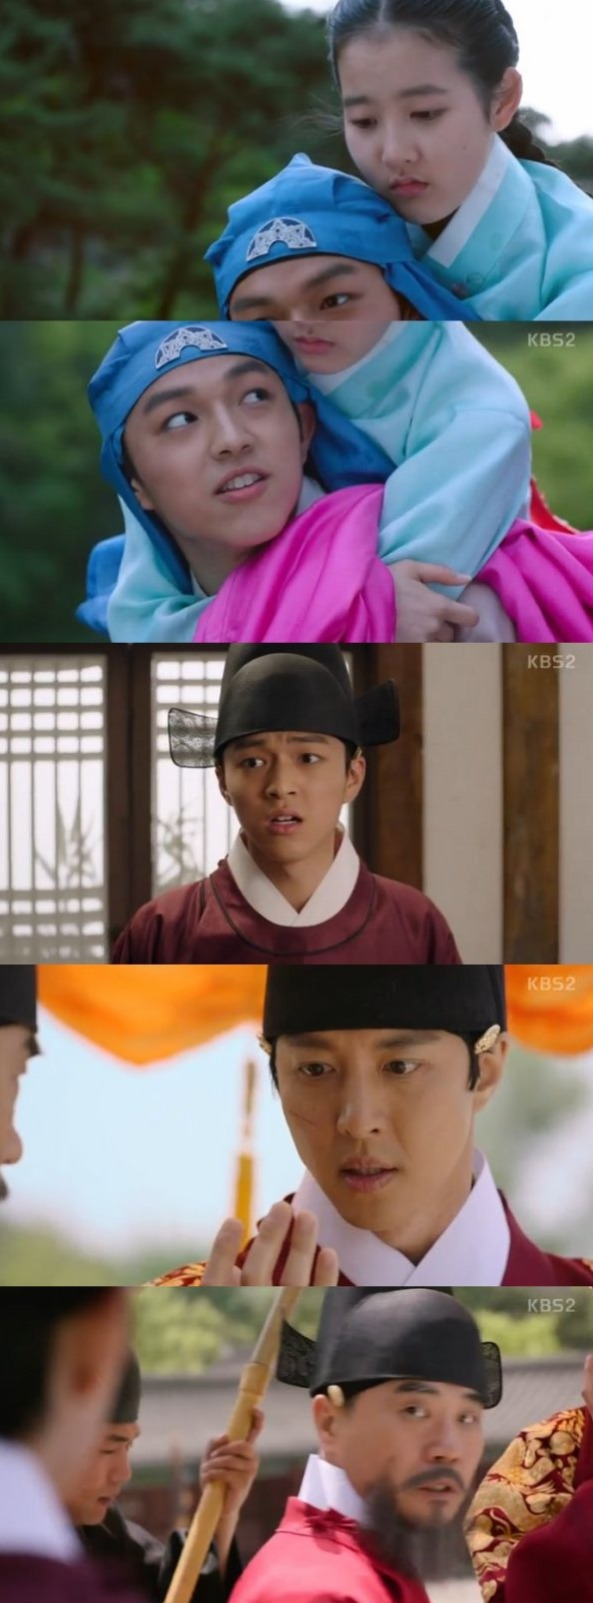 [Spoiler] Added episode 3 captures for the Korean drama 'Queen for 7 Days'